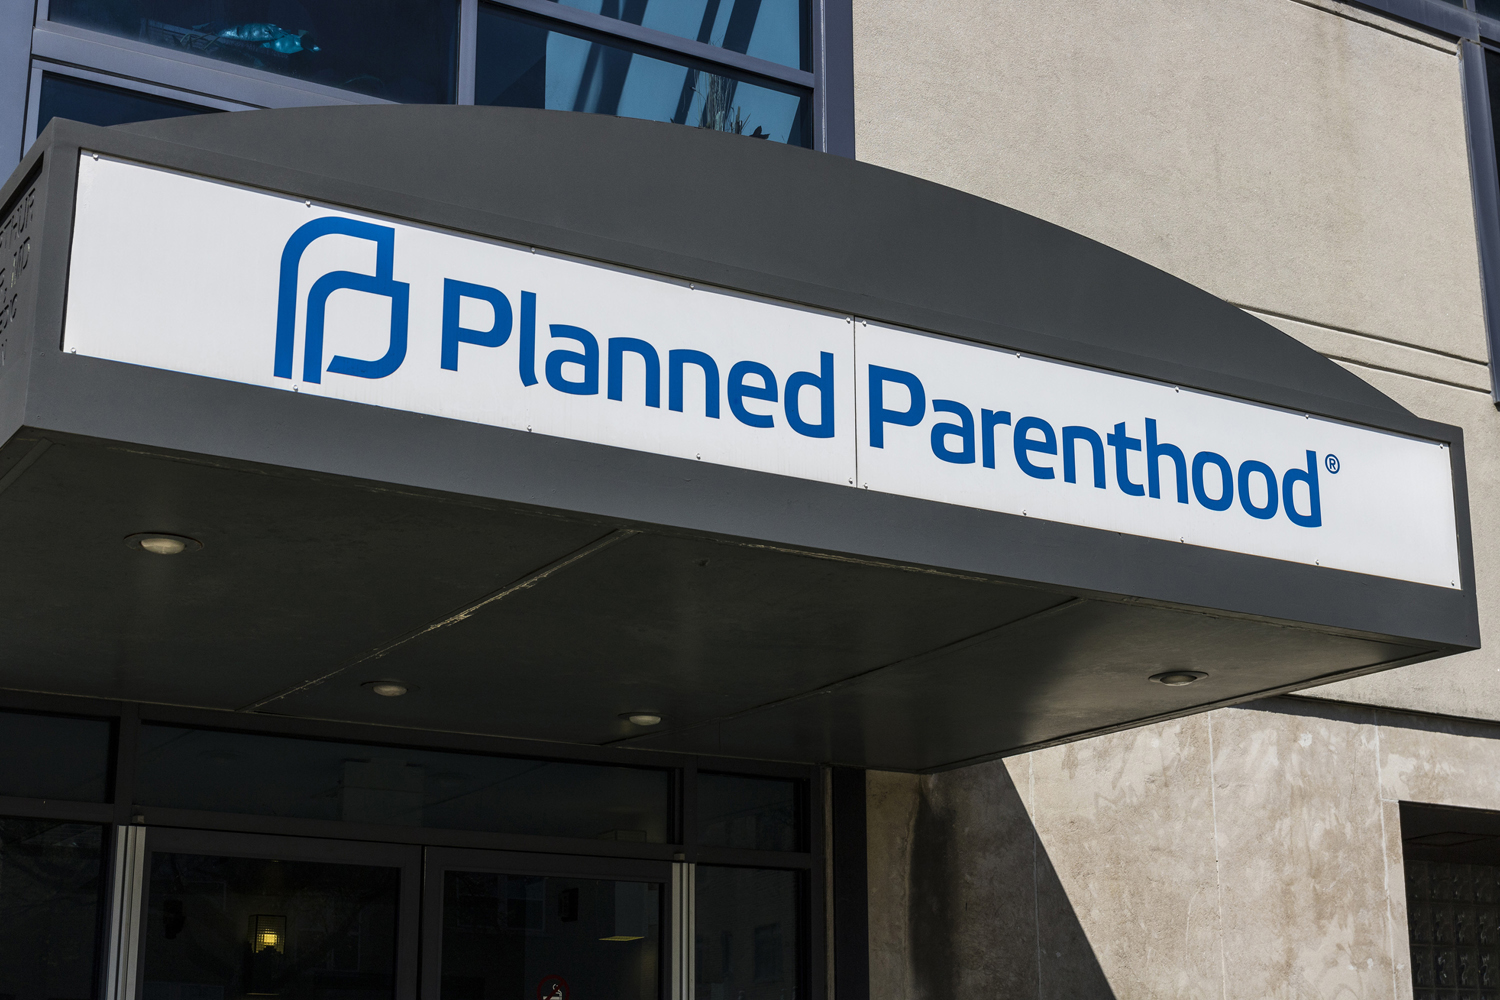 A Planned Parenthood location in April 2017.